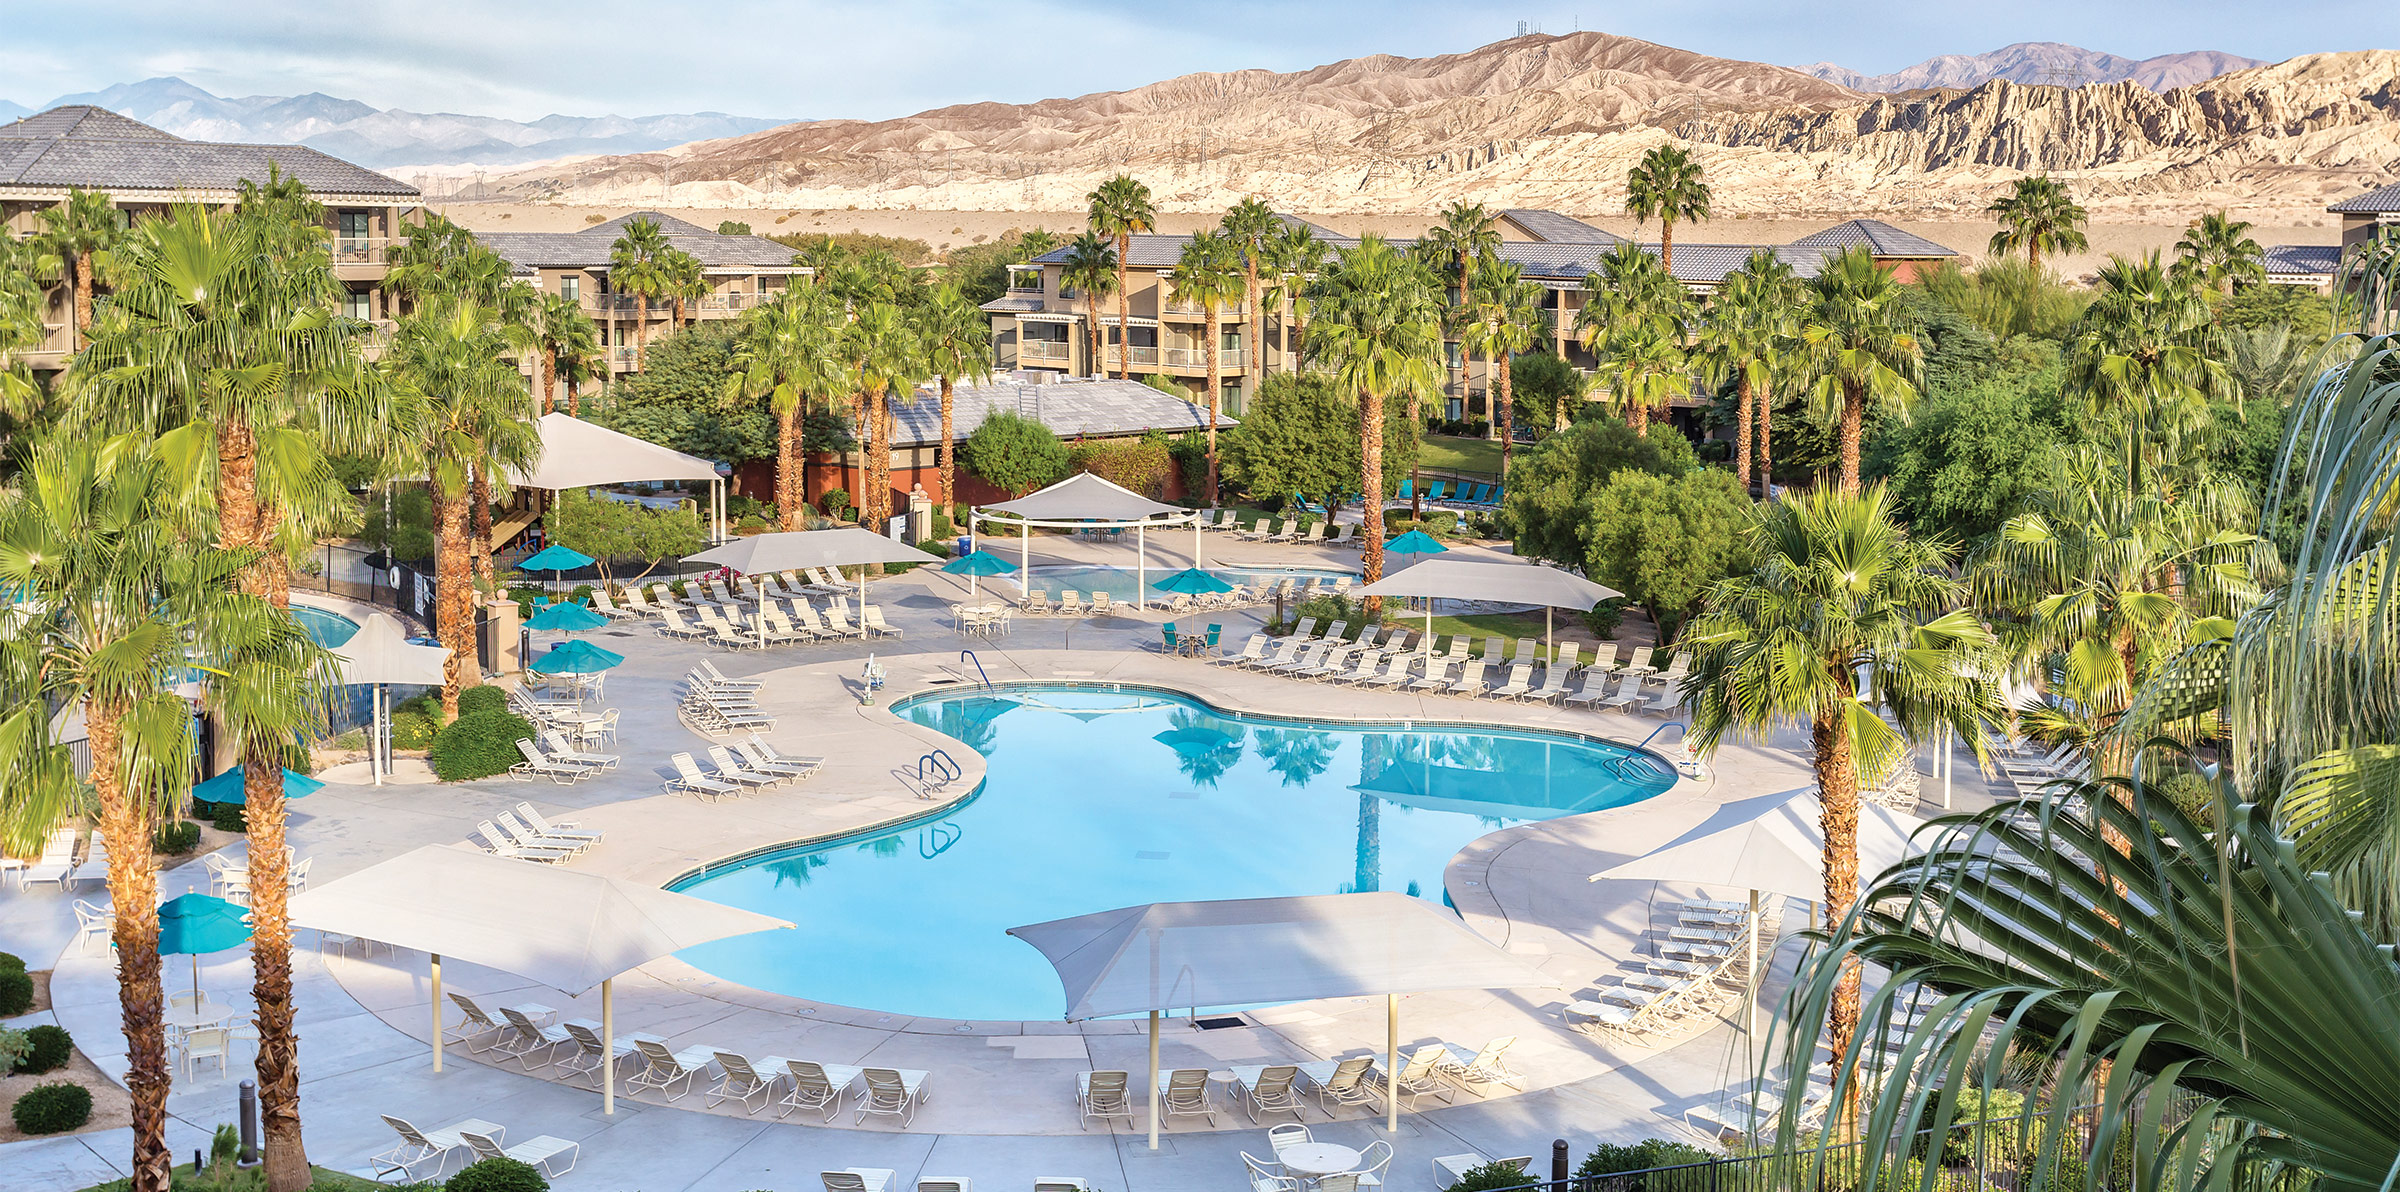 Apartment 2 Bedroom 2 Bath In Indio  CA   Palm Springs  5 miles from COACHELLA photo 18634342